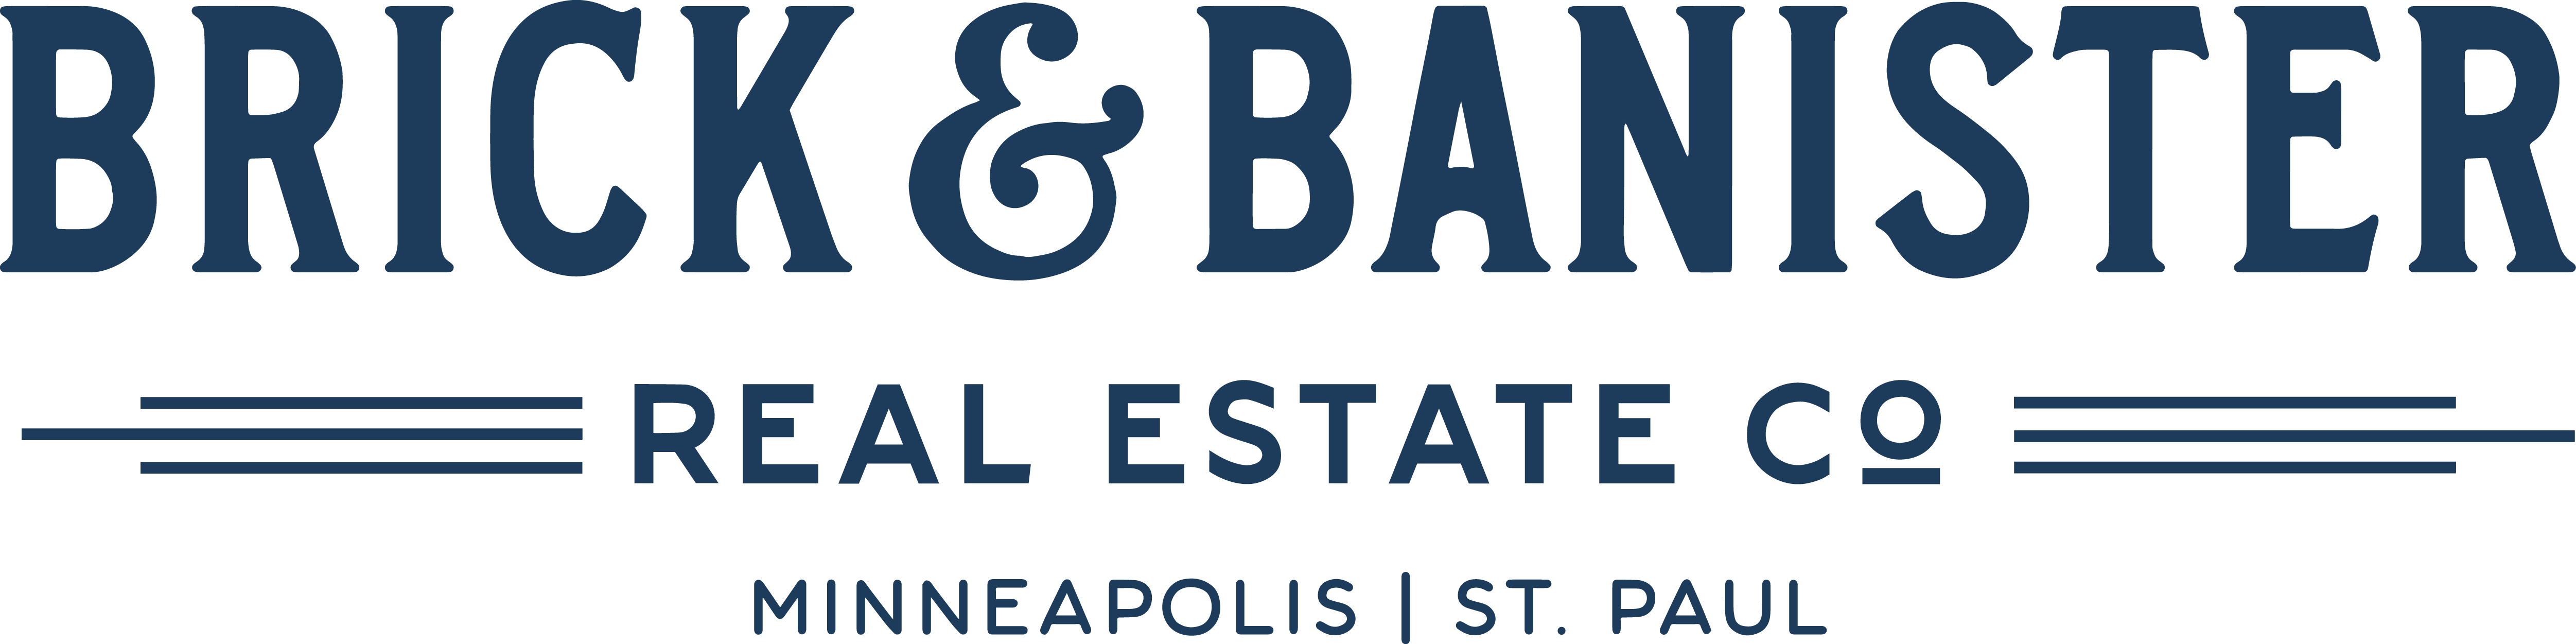 Brick and Banister Real Estate Co.